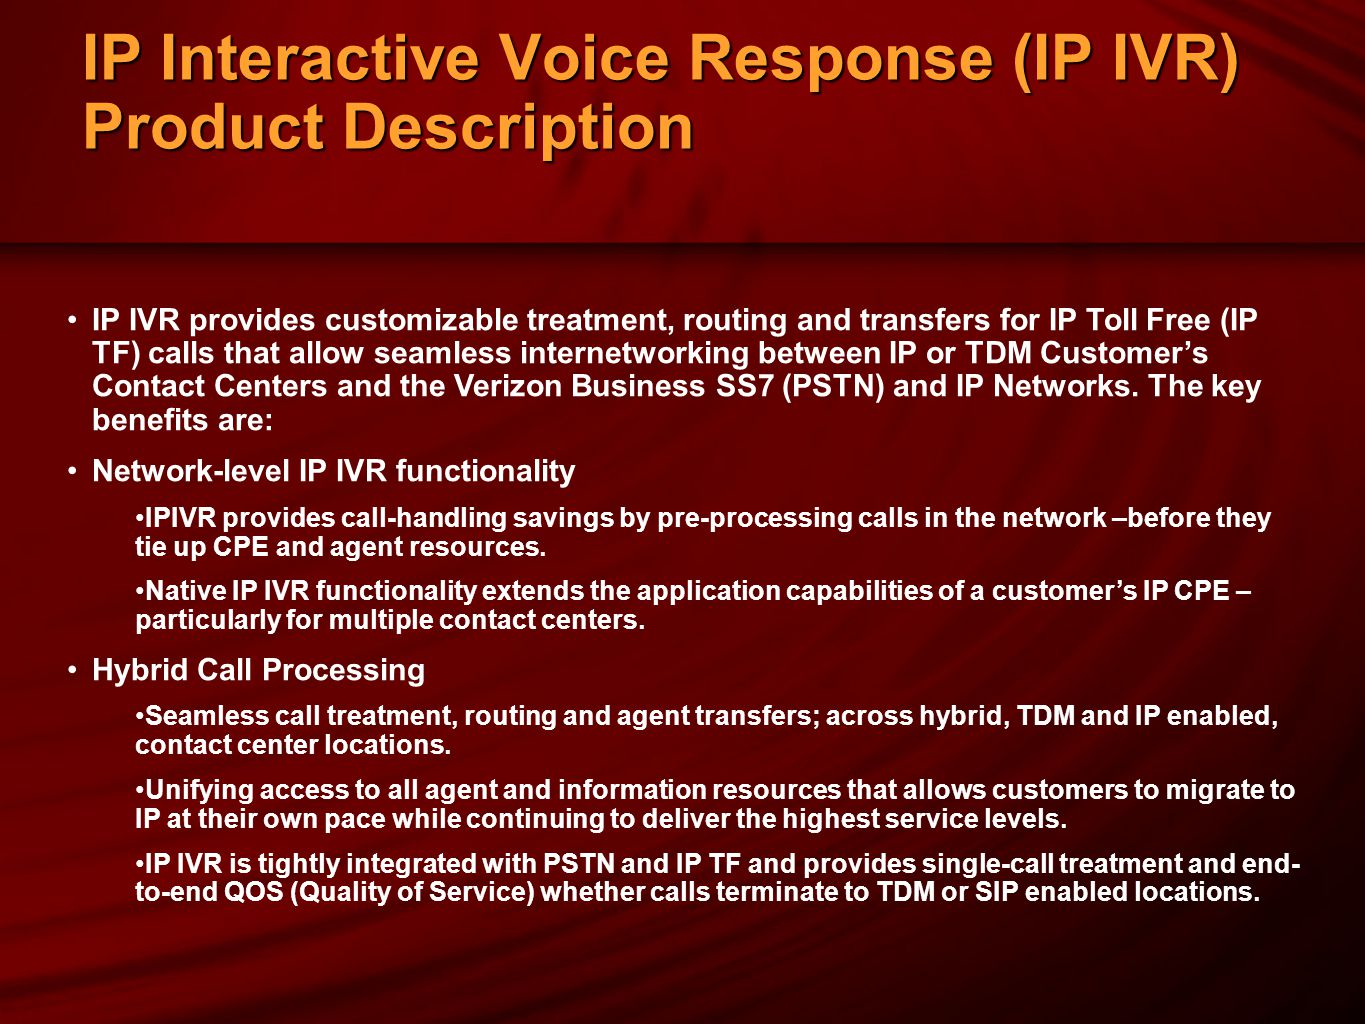 IP Interactive Voice Response (IP IVR) Product Description IP IVR provides customizable treatment, routing and transfers for IP Toll Free (IP TF) calls that allow seamless internetworking between IP or TDM Customer's Contact Centers and the Verizon Business SS7 (PSTN) and IP Networks.